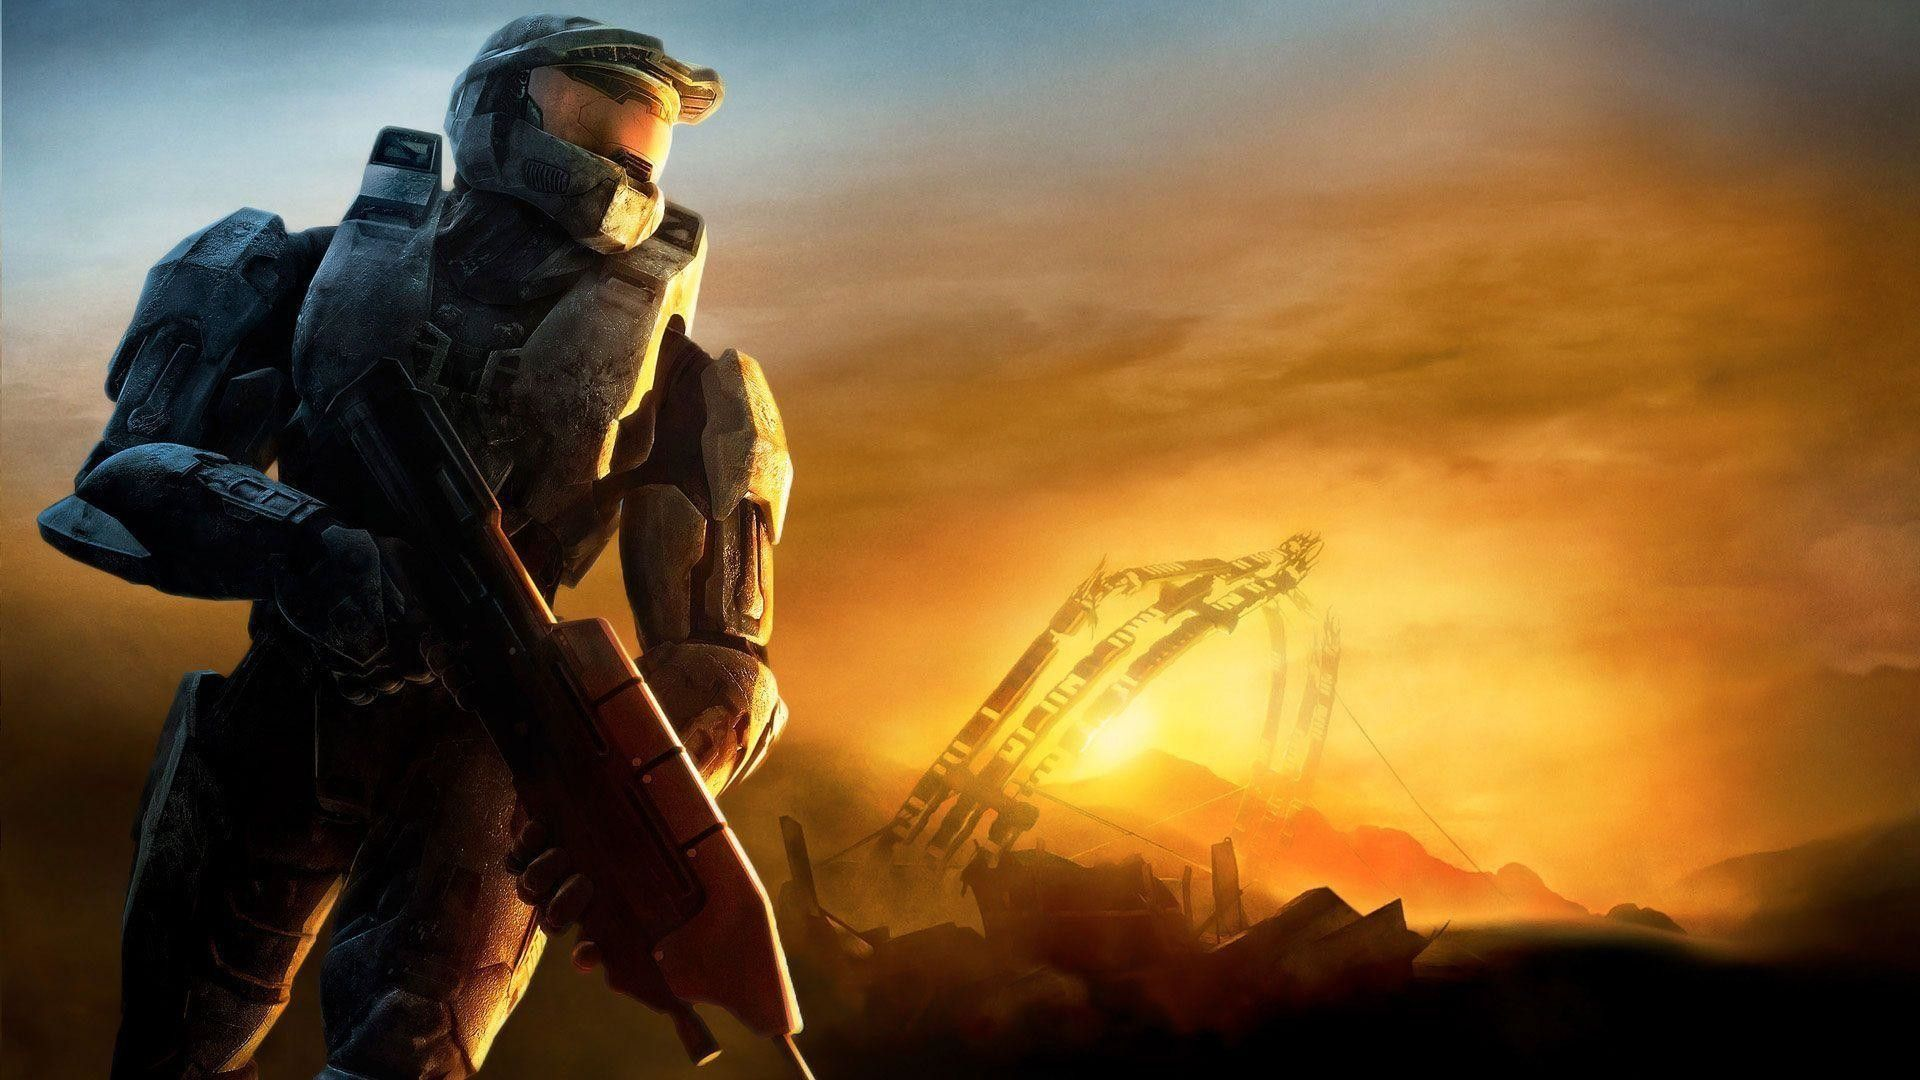 Halo 3 Wallpapers Top Free Halo 3 Backgrounds Wallpaperaccess